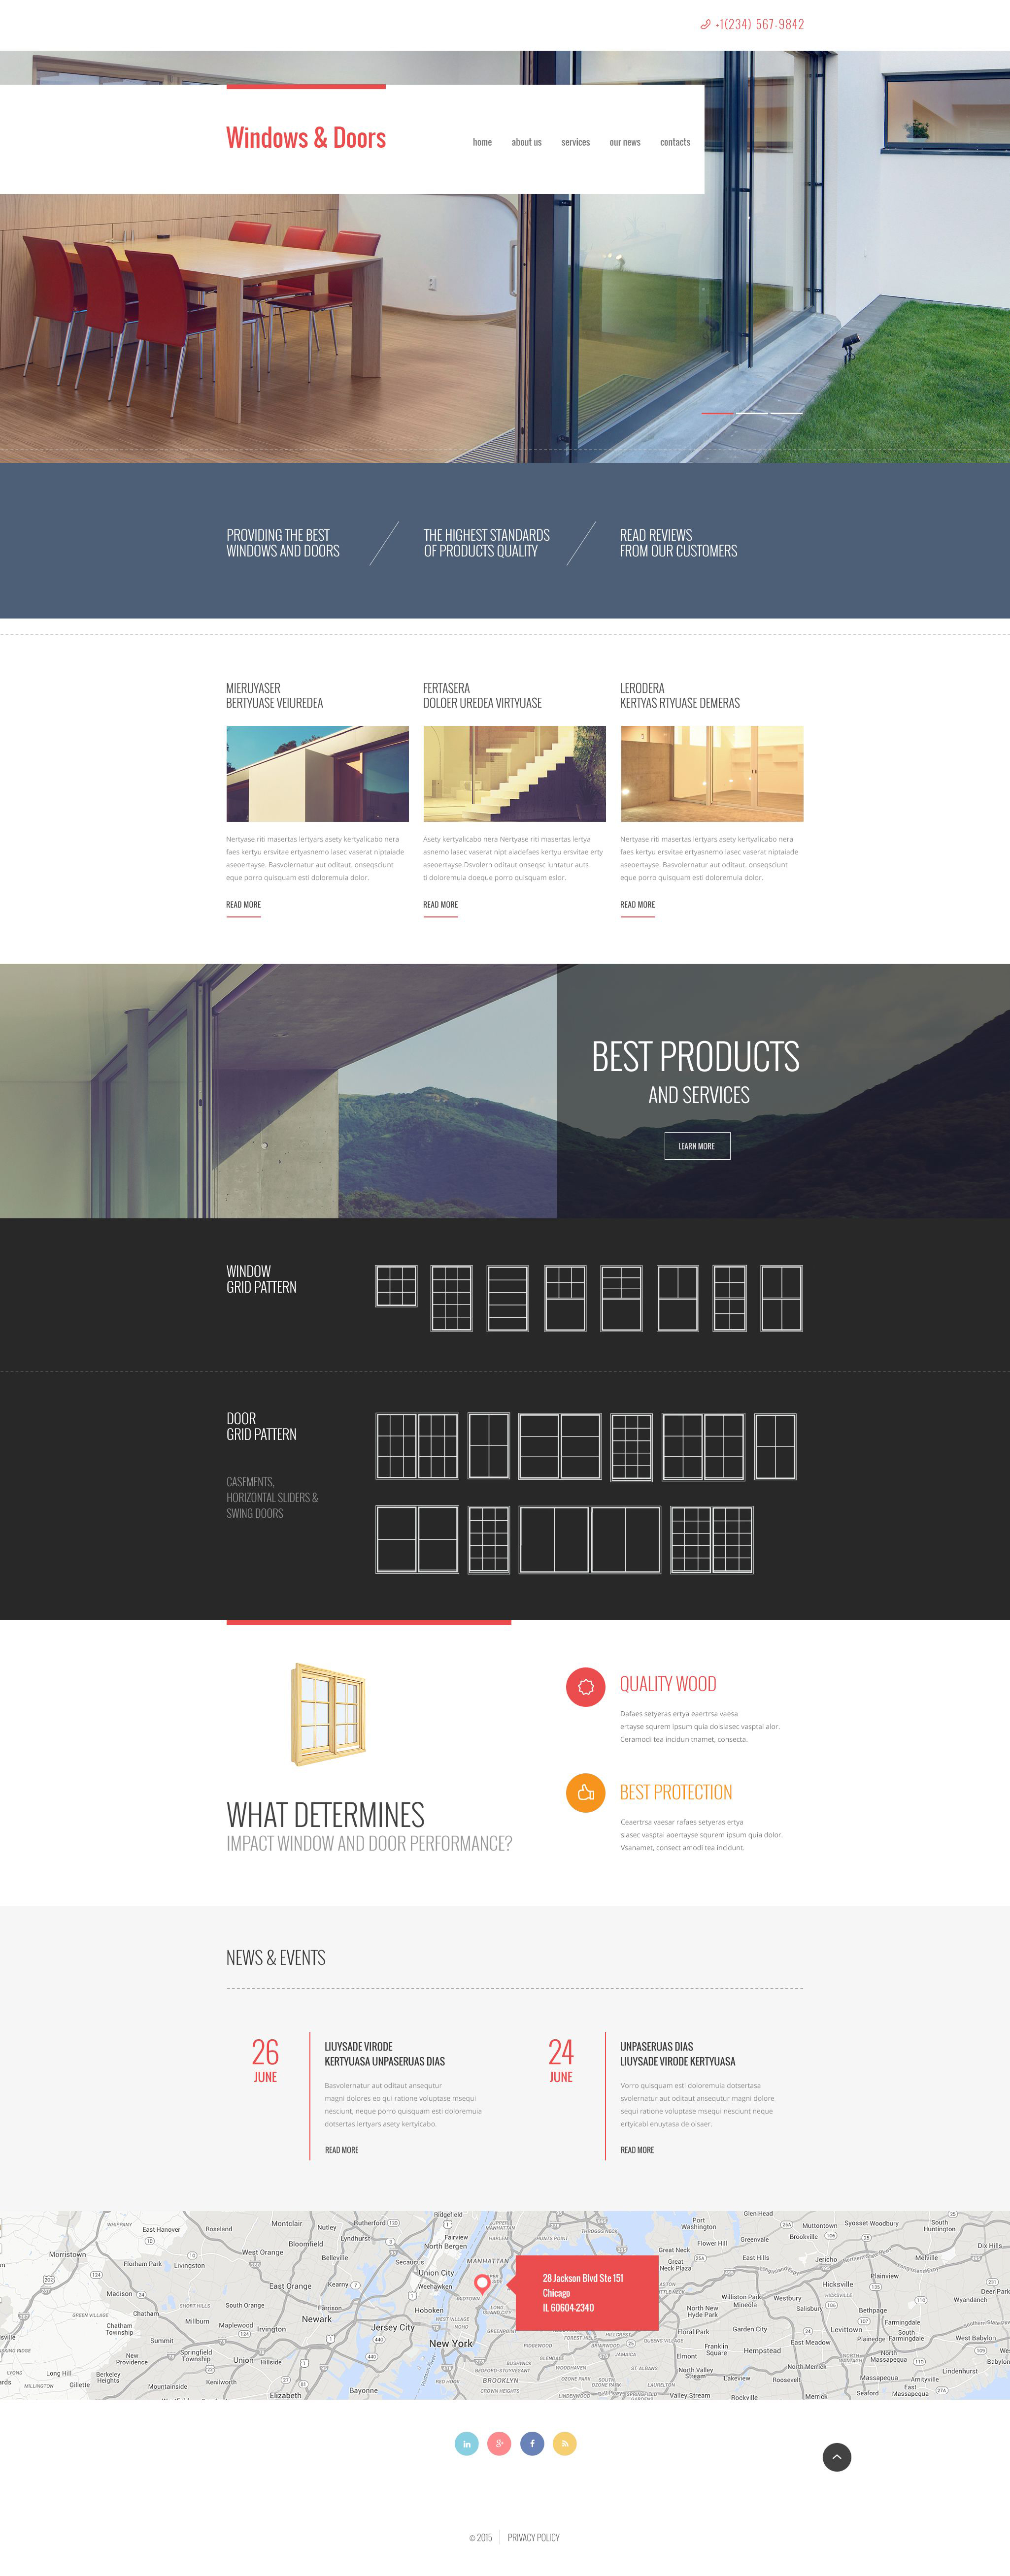 The Blinds & Curtains Store Curtains Bootstrap Design 54602, one of the best website templates of its kind (interior & furniture, most popular), also known as Blinds & Curtains Store curtains website template, blinds website template, and wood website template, venetian website template, window-blind website template, shutters website template, roller website template, shopping cart store website template, shop website template, servicescurtais and related with Blinds & Curtains Store curtains, blinds, and wood, venetian, window-blind, shutters, roller, shopping cart store, shop, servicescurtais, etc.